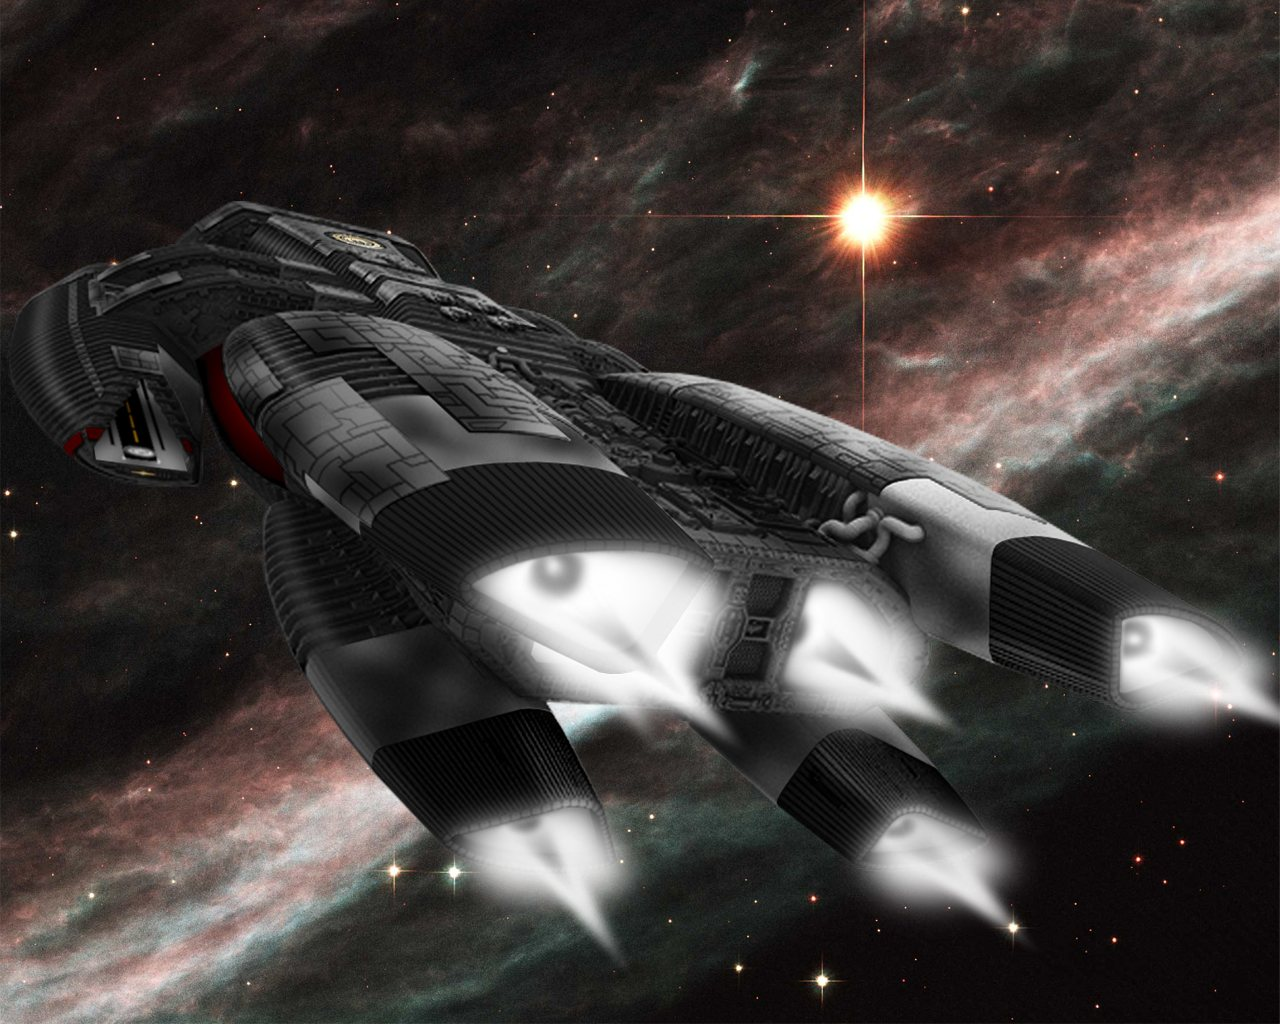 Battlestar Galactica Wallpapers Wallpaper Images BSG Sci Fi Pictures Scifi